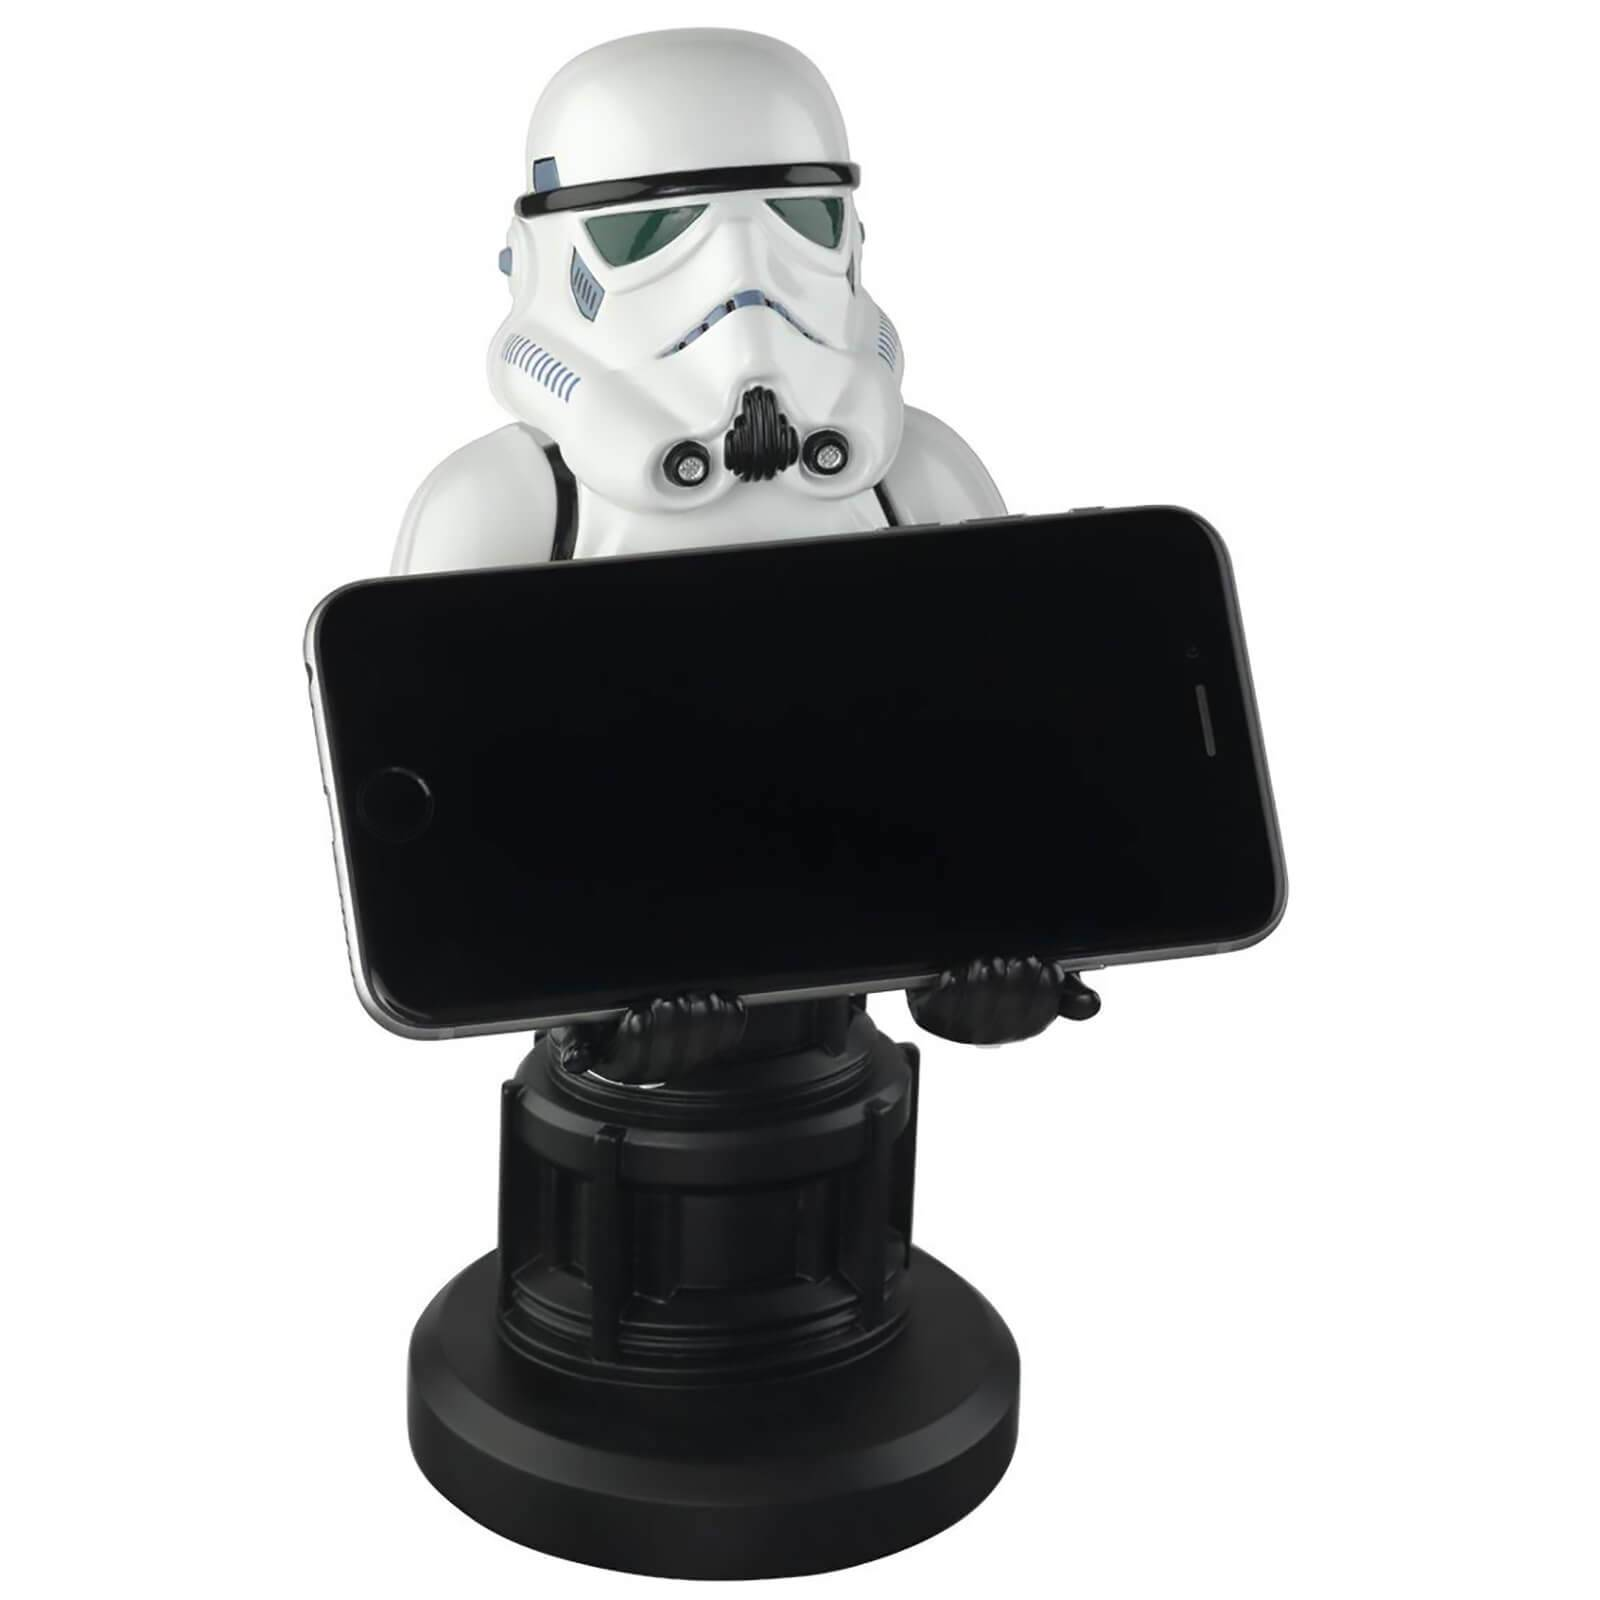 Cable Guys Star Wars Collectable Stormtrooper 8 Inch Cable Guy Controller and Smartphone Stand-